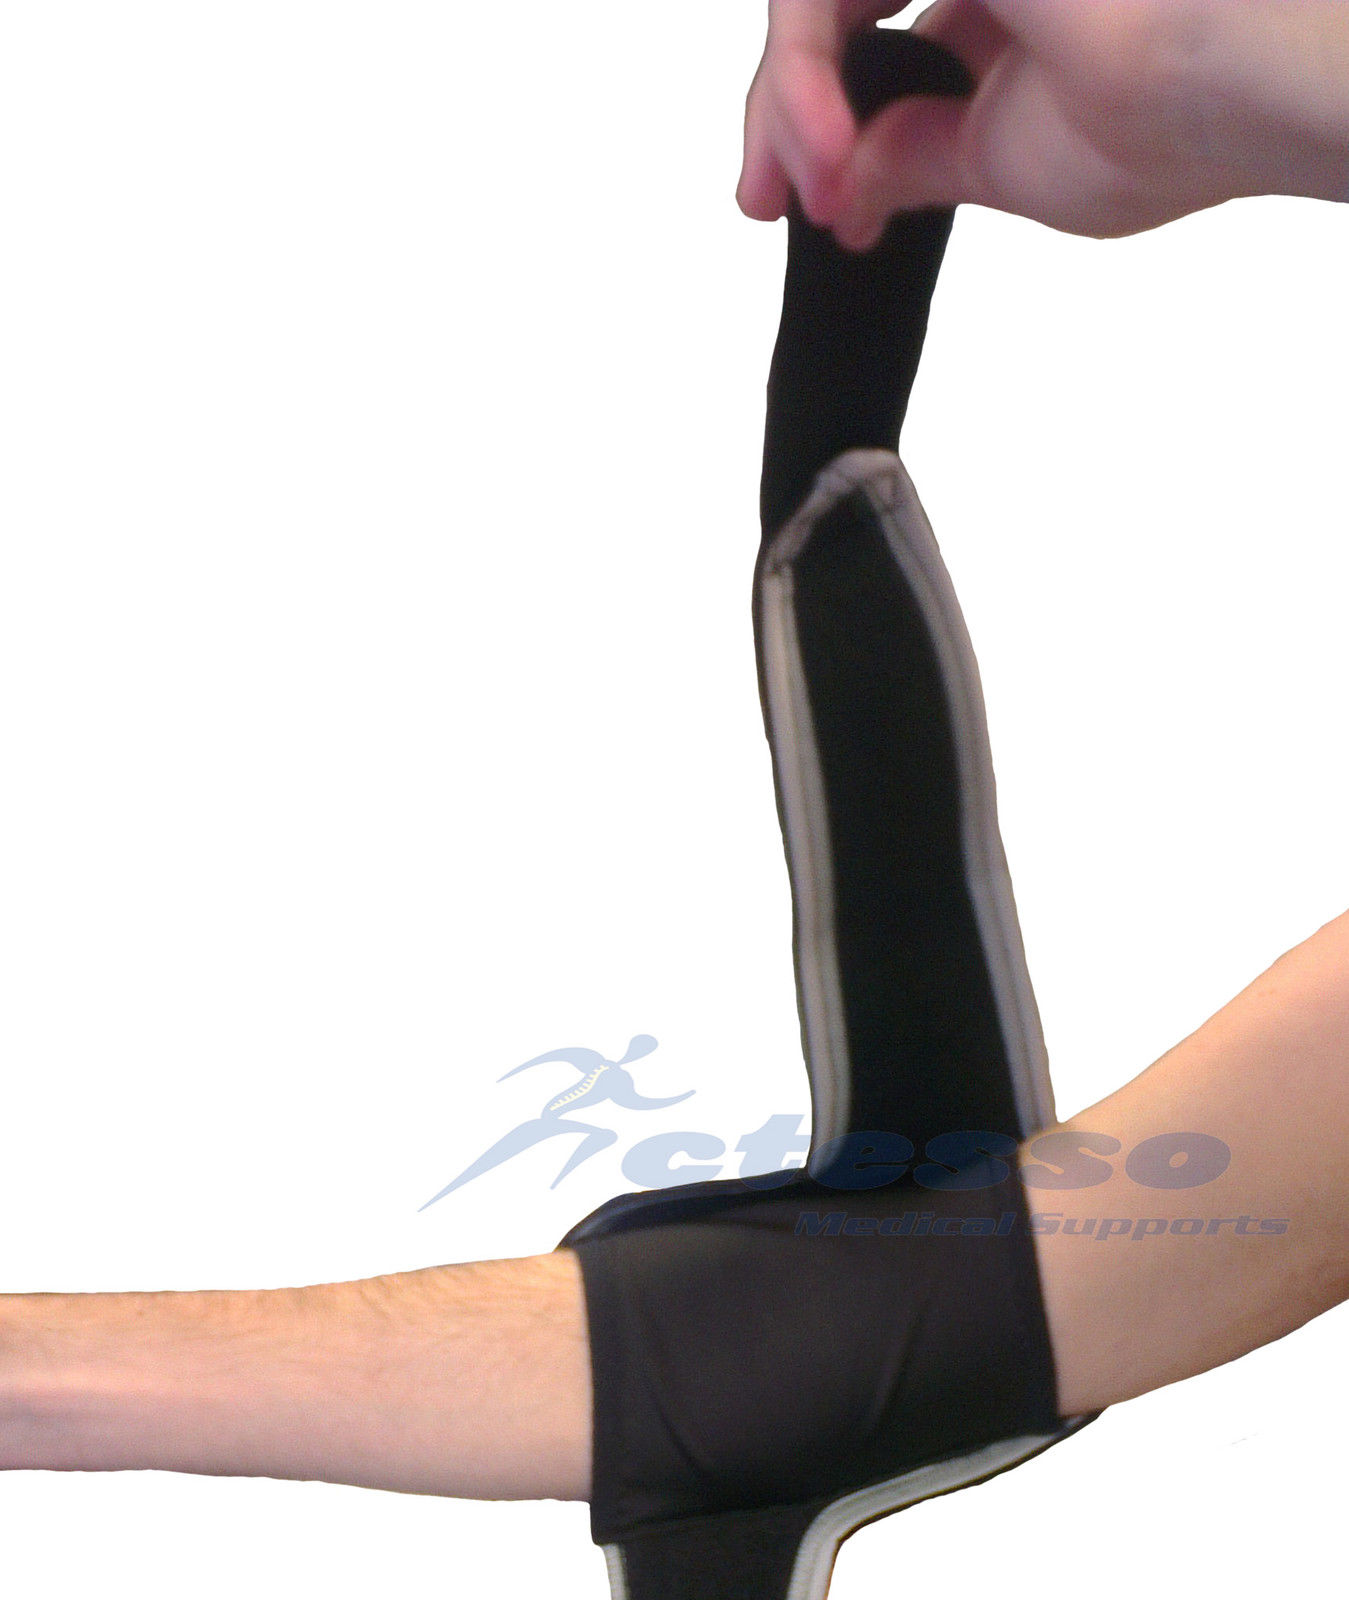 golfers elbow Improvised systems can cure your golfers elbow if you have broomstick & ready to spent 5 minutesget rid of the root cause of golfers elbow to permanently heal.